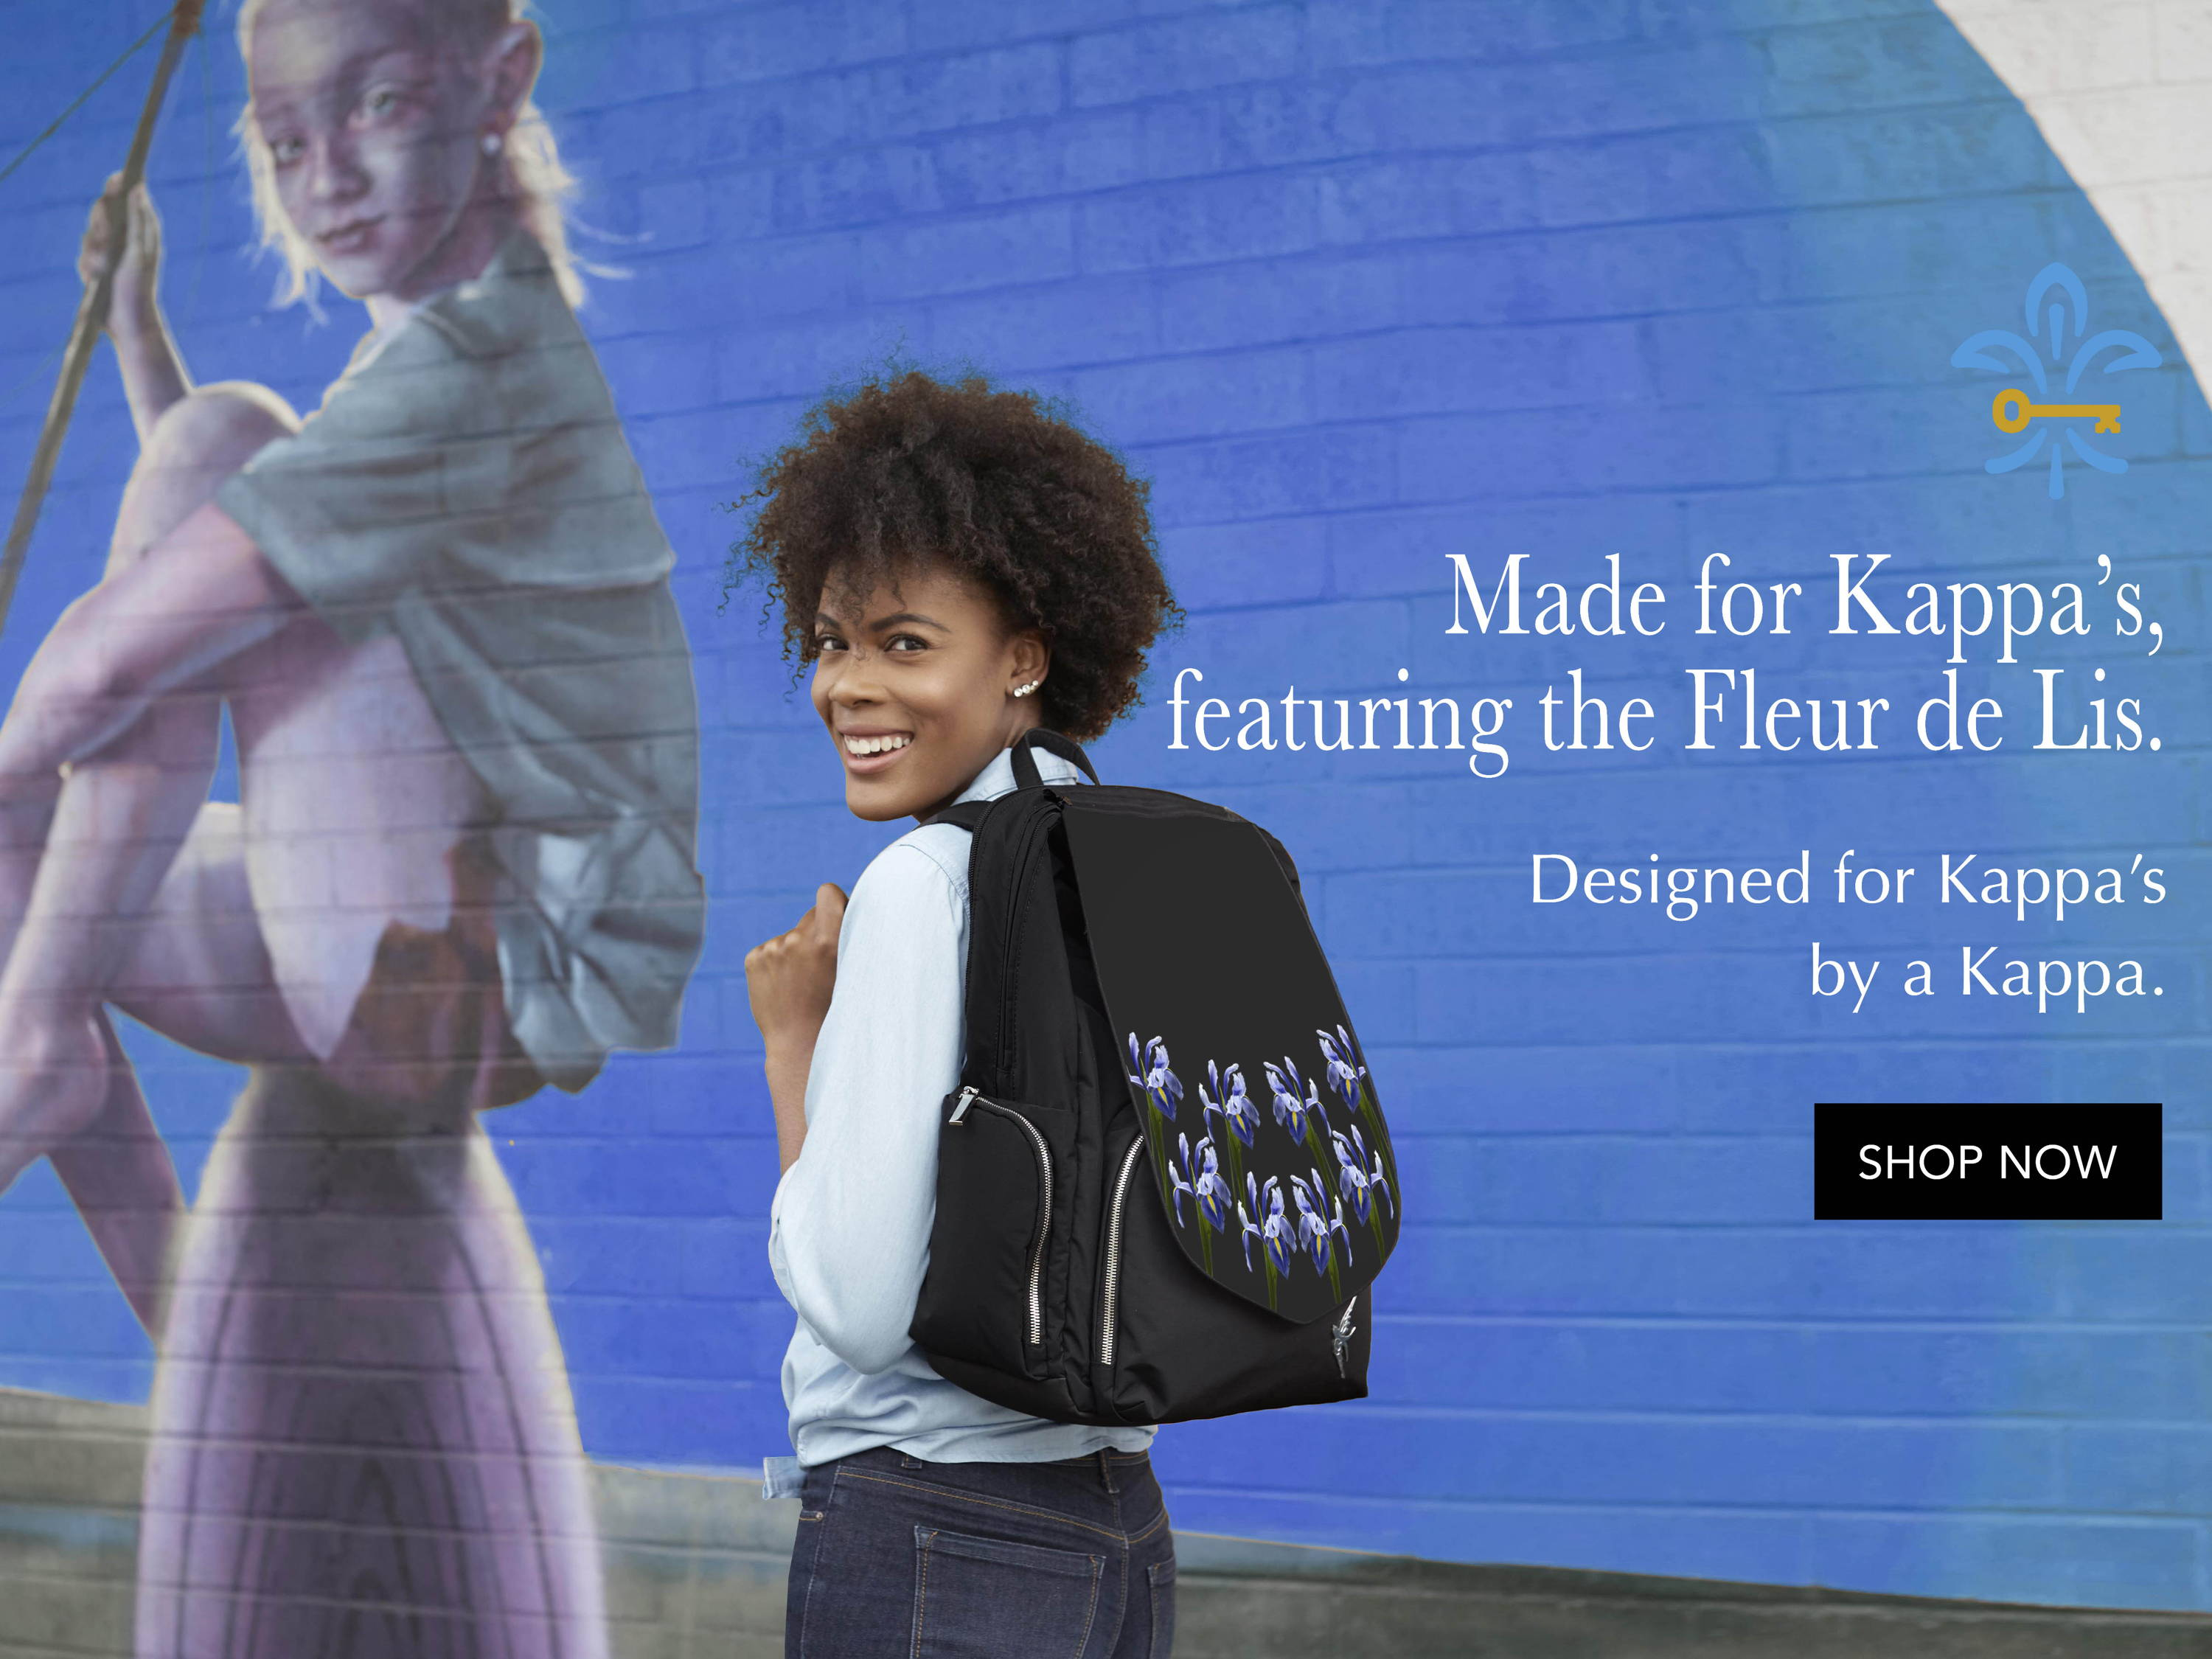 Laptop Backpack by GraceTech.  Shown with the Fleur de Lis (Iris flower) print. Made for Kappa Kappa Gamma.